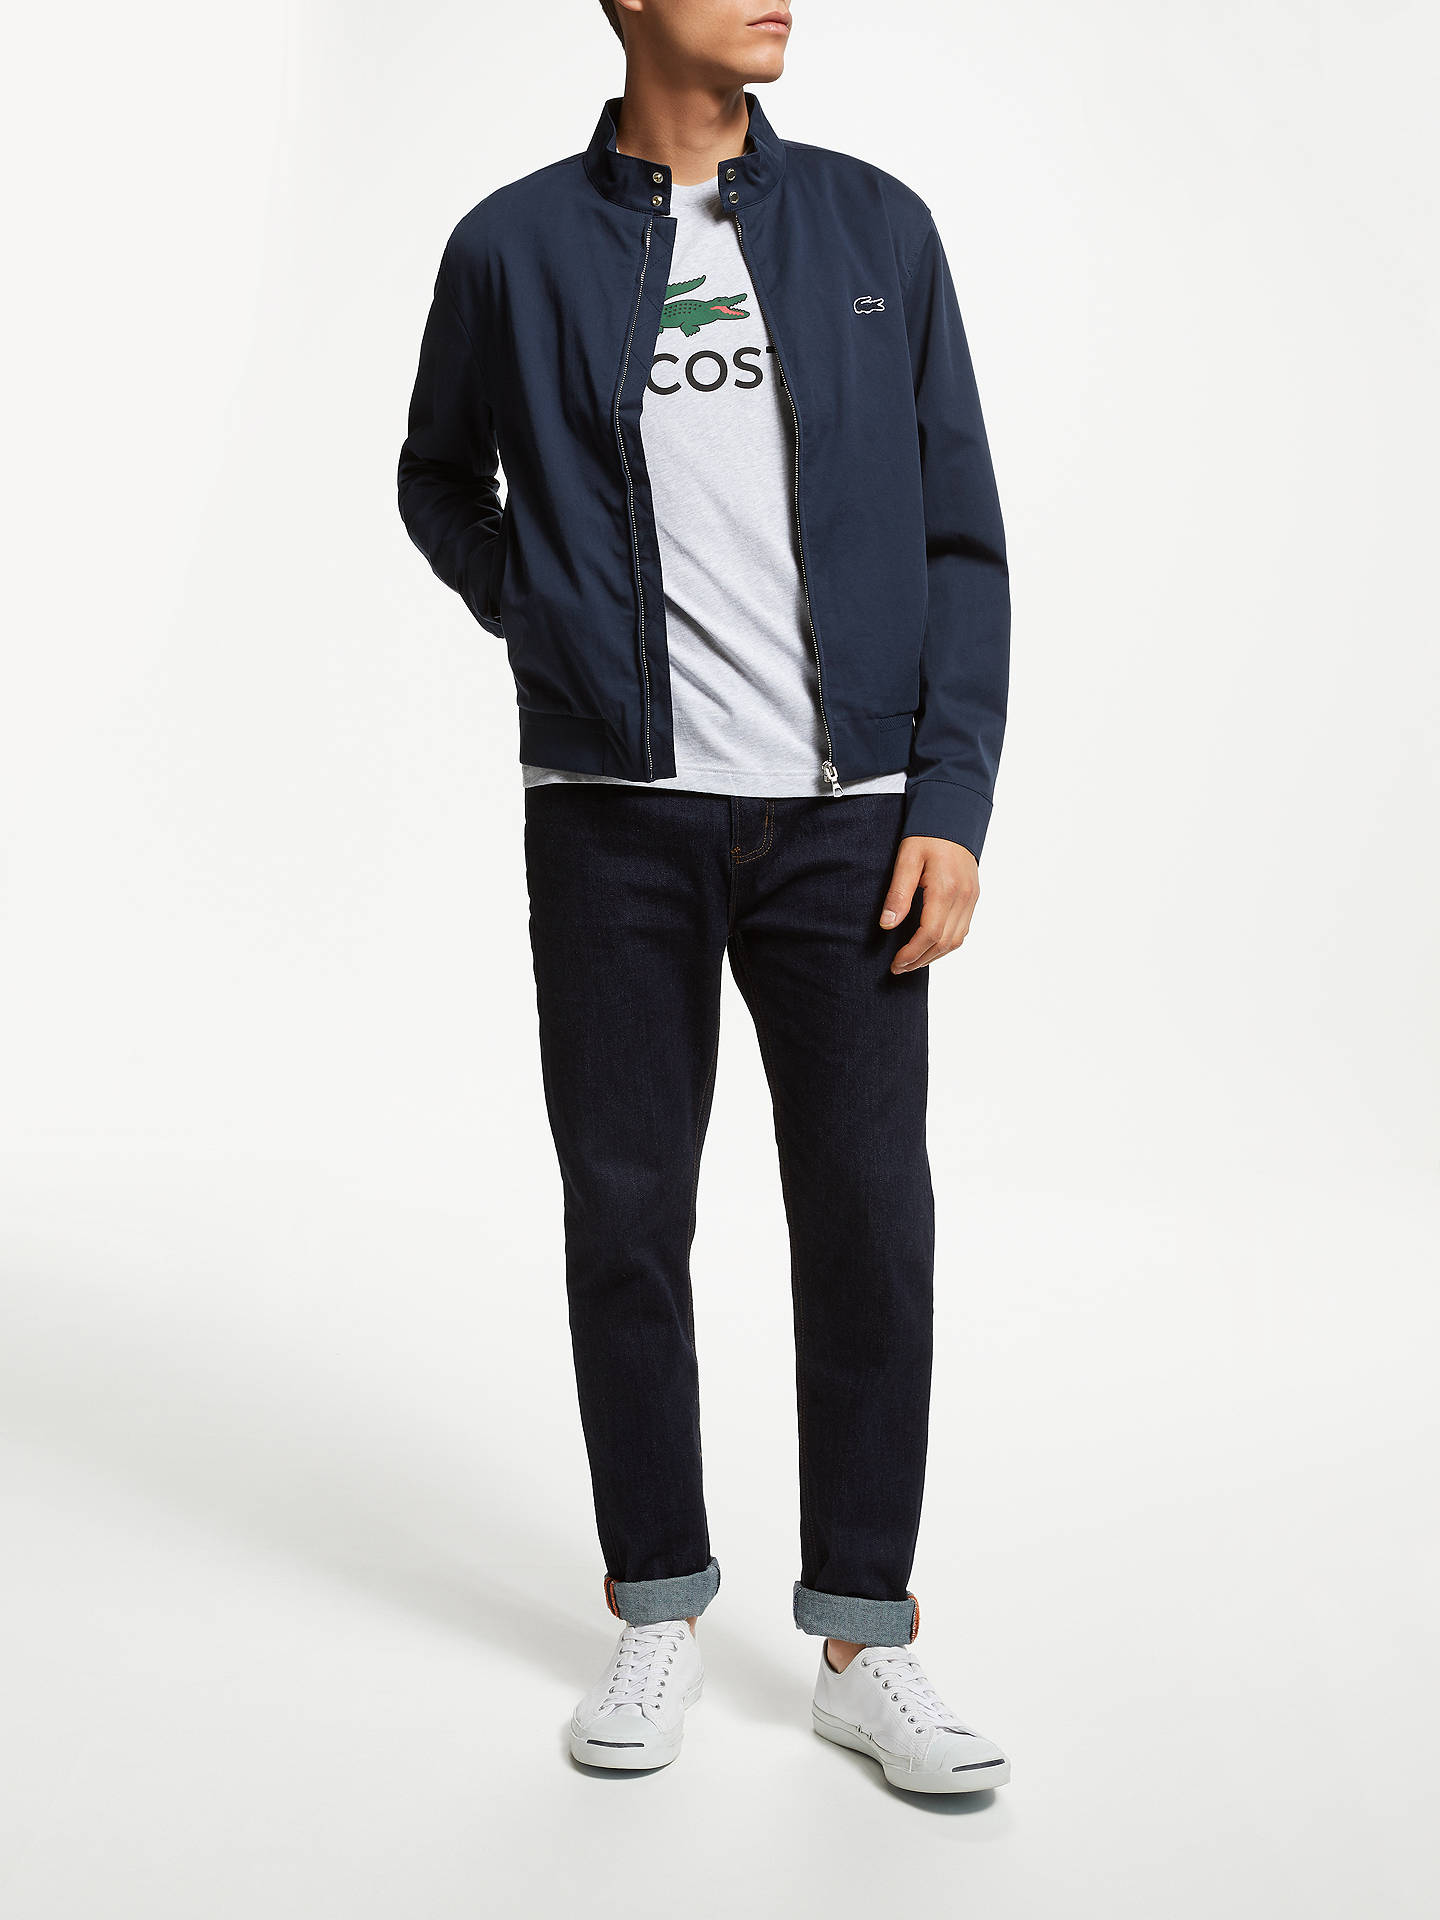 timeless design 56e17 ae92a ... Buy Lacoste Harrington Jacket, Navy, M Online at johnlewis.com ...